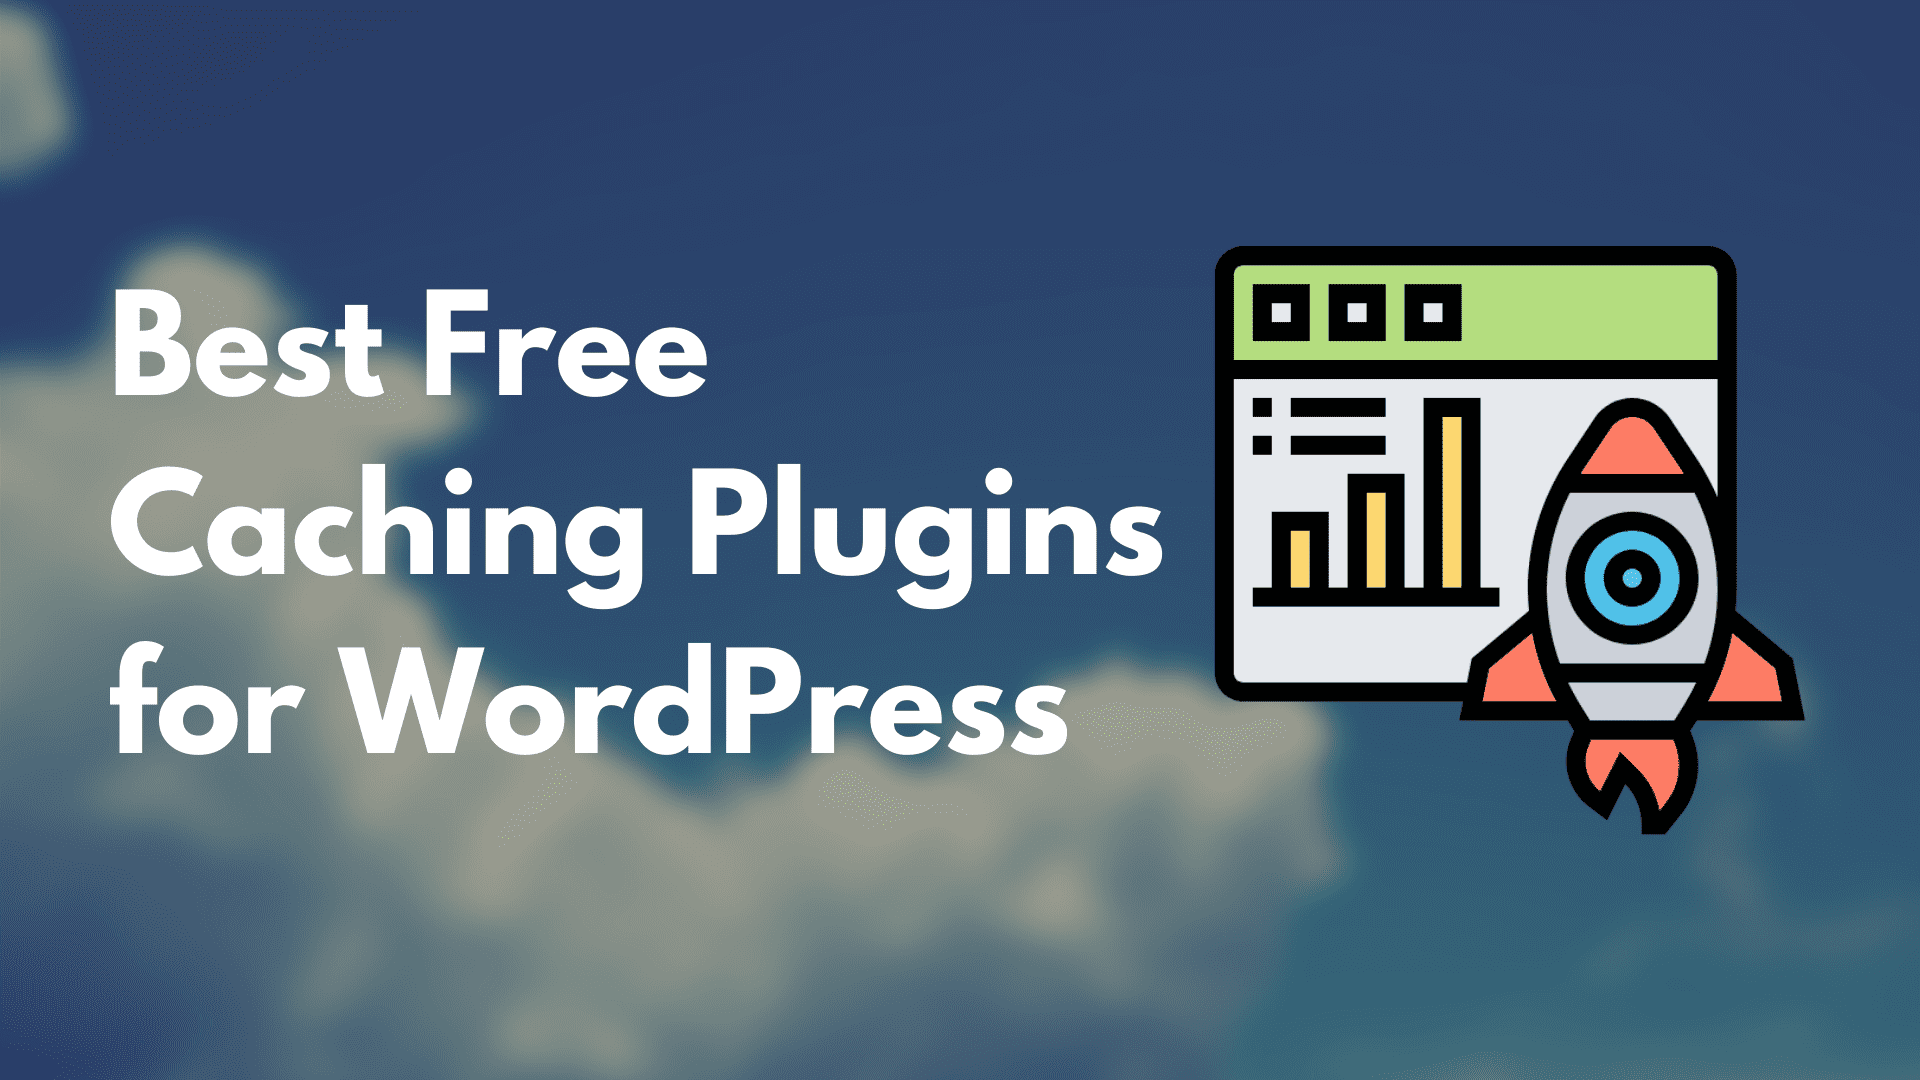 Best Free Caching Plugins for WordPress